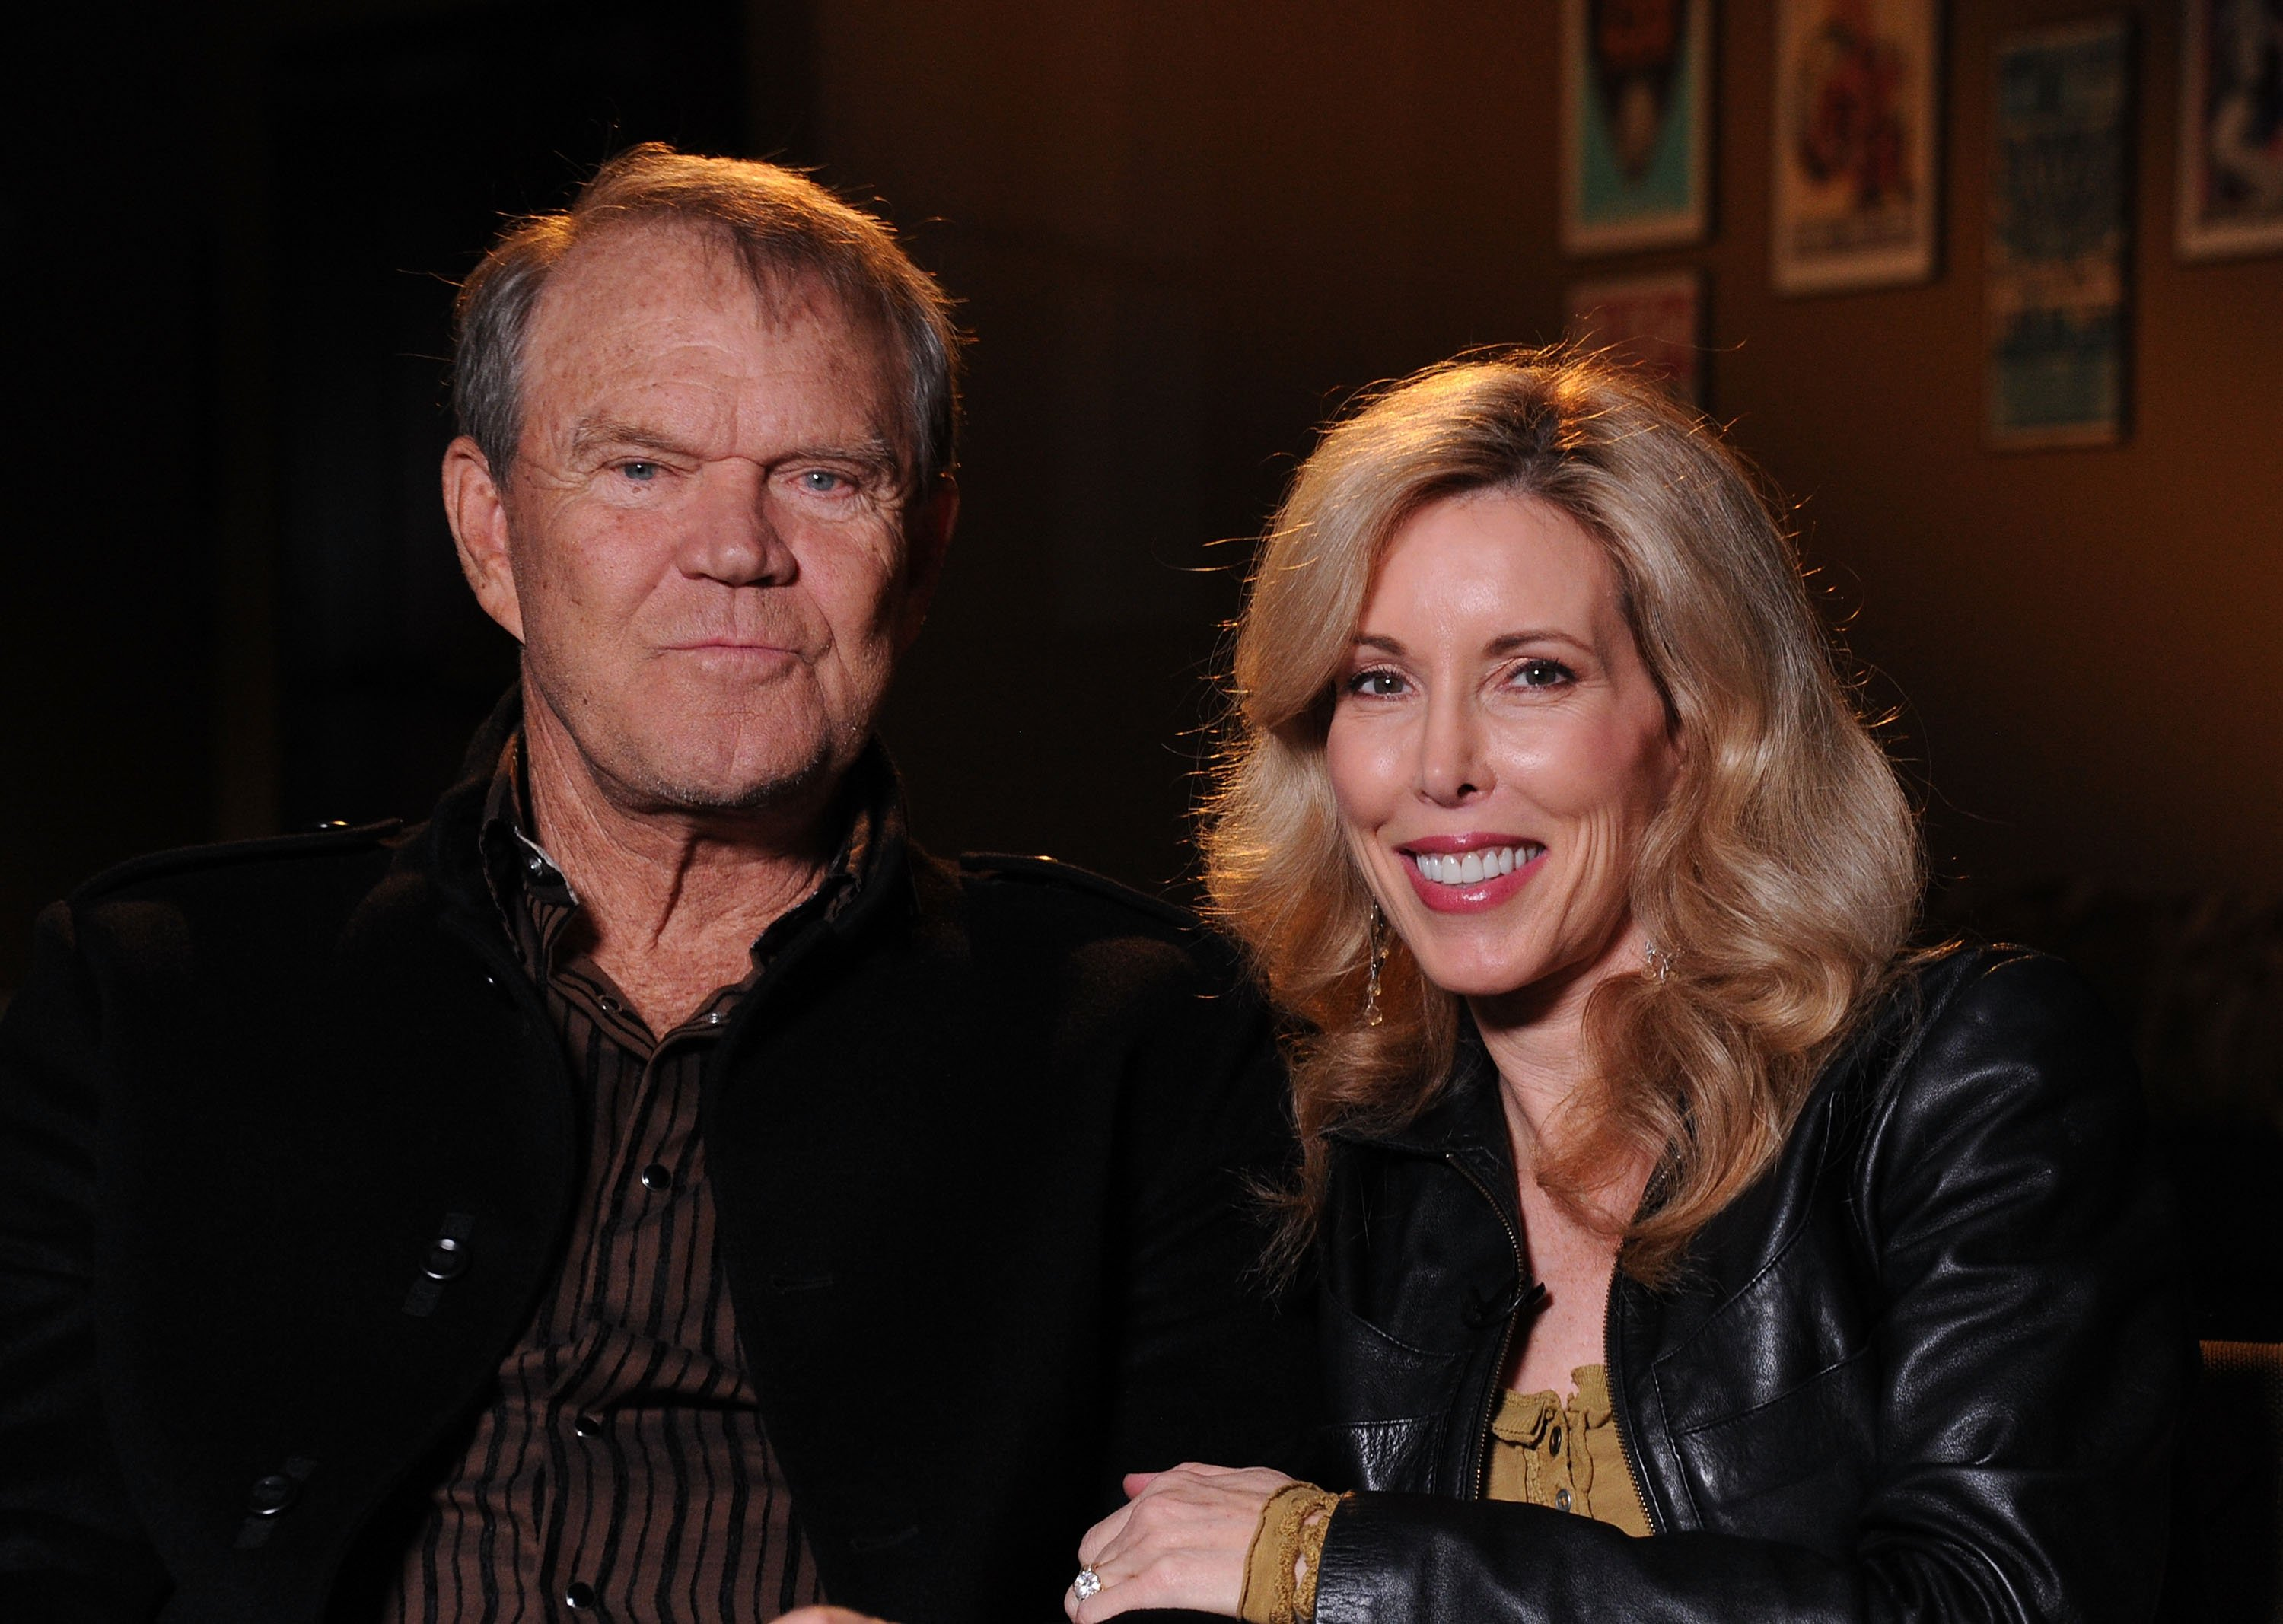 The late Glen Campbell and his wife Kim Campbell | Photo: Getty Images